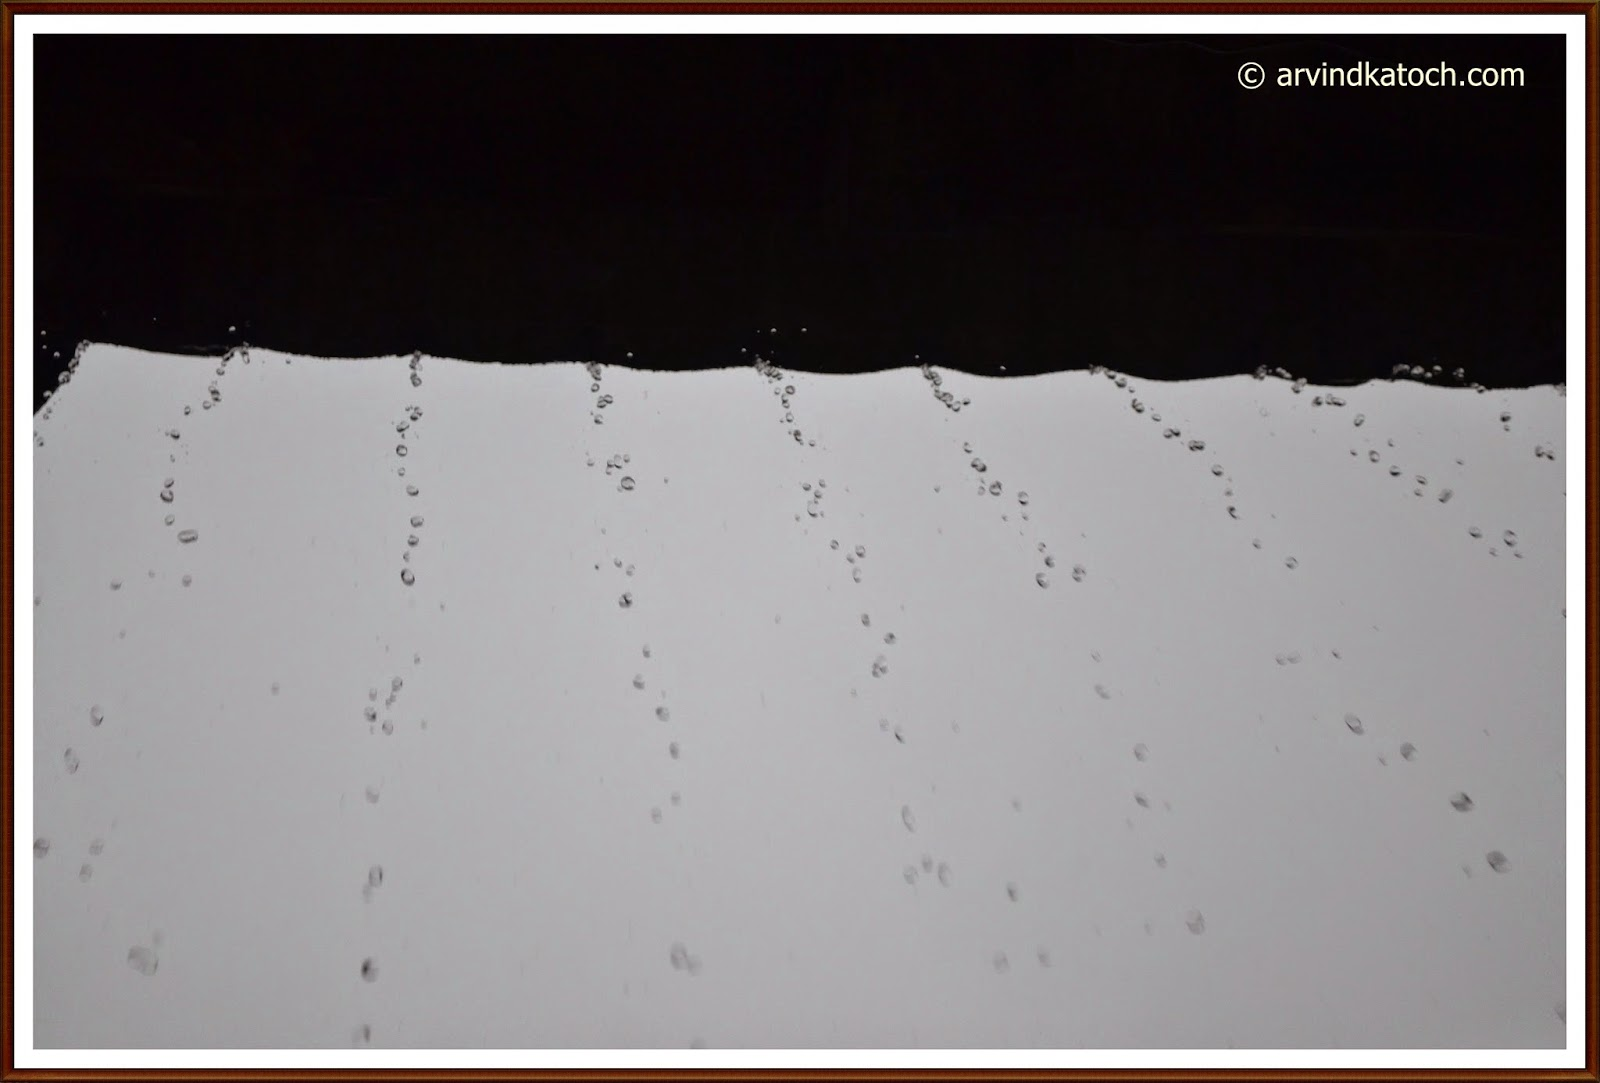 Rain drops, shed, Monsoon, rain, drops,